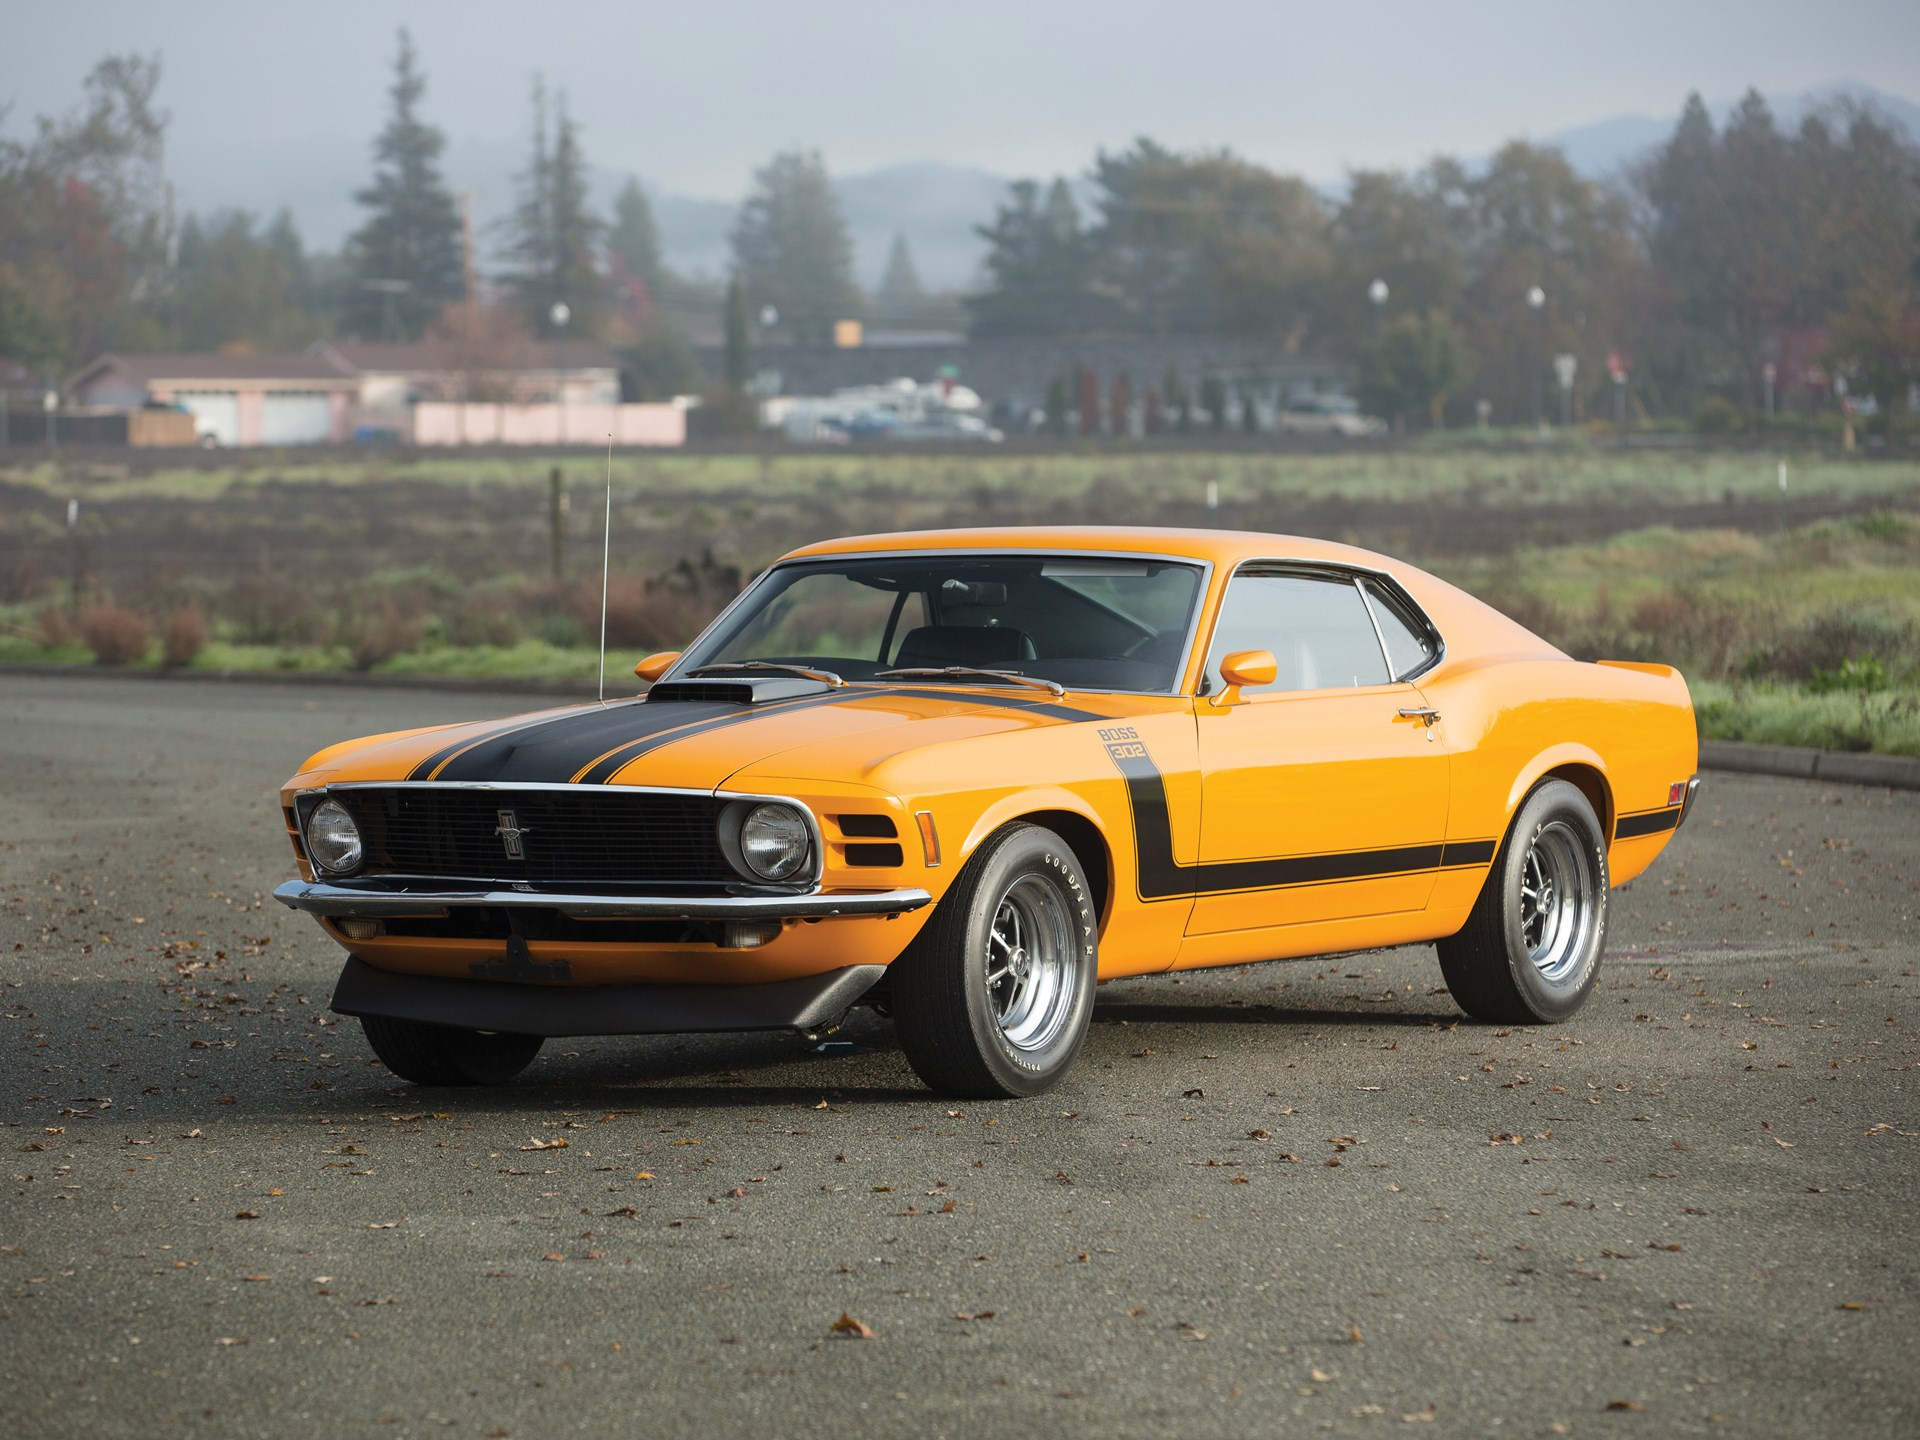 rm sotheby\u0027s 1970 ford mustang boss 302 arizona 20171970 ford mustang boss 302